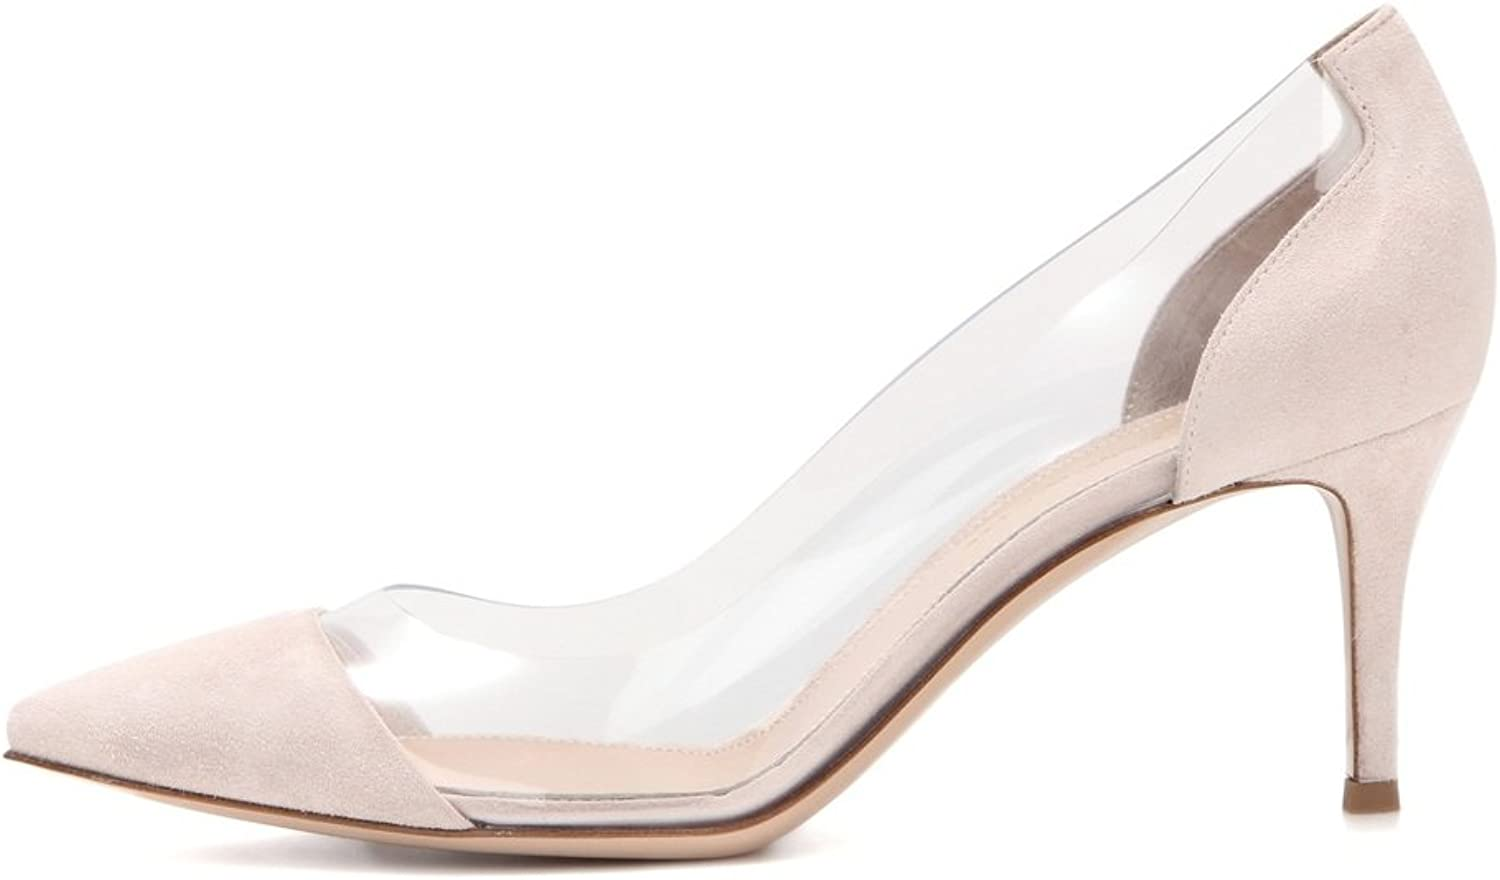 Eldof Womens High Heel PVC Pumps   8CM Pointed Cap Toe Transparent PVC Stilettos   Wedding Dress Event Pumps shoes